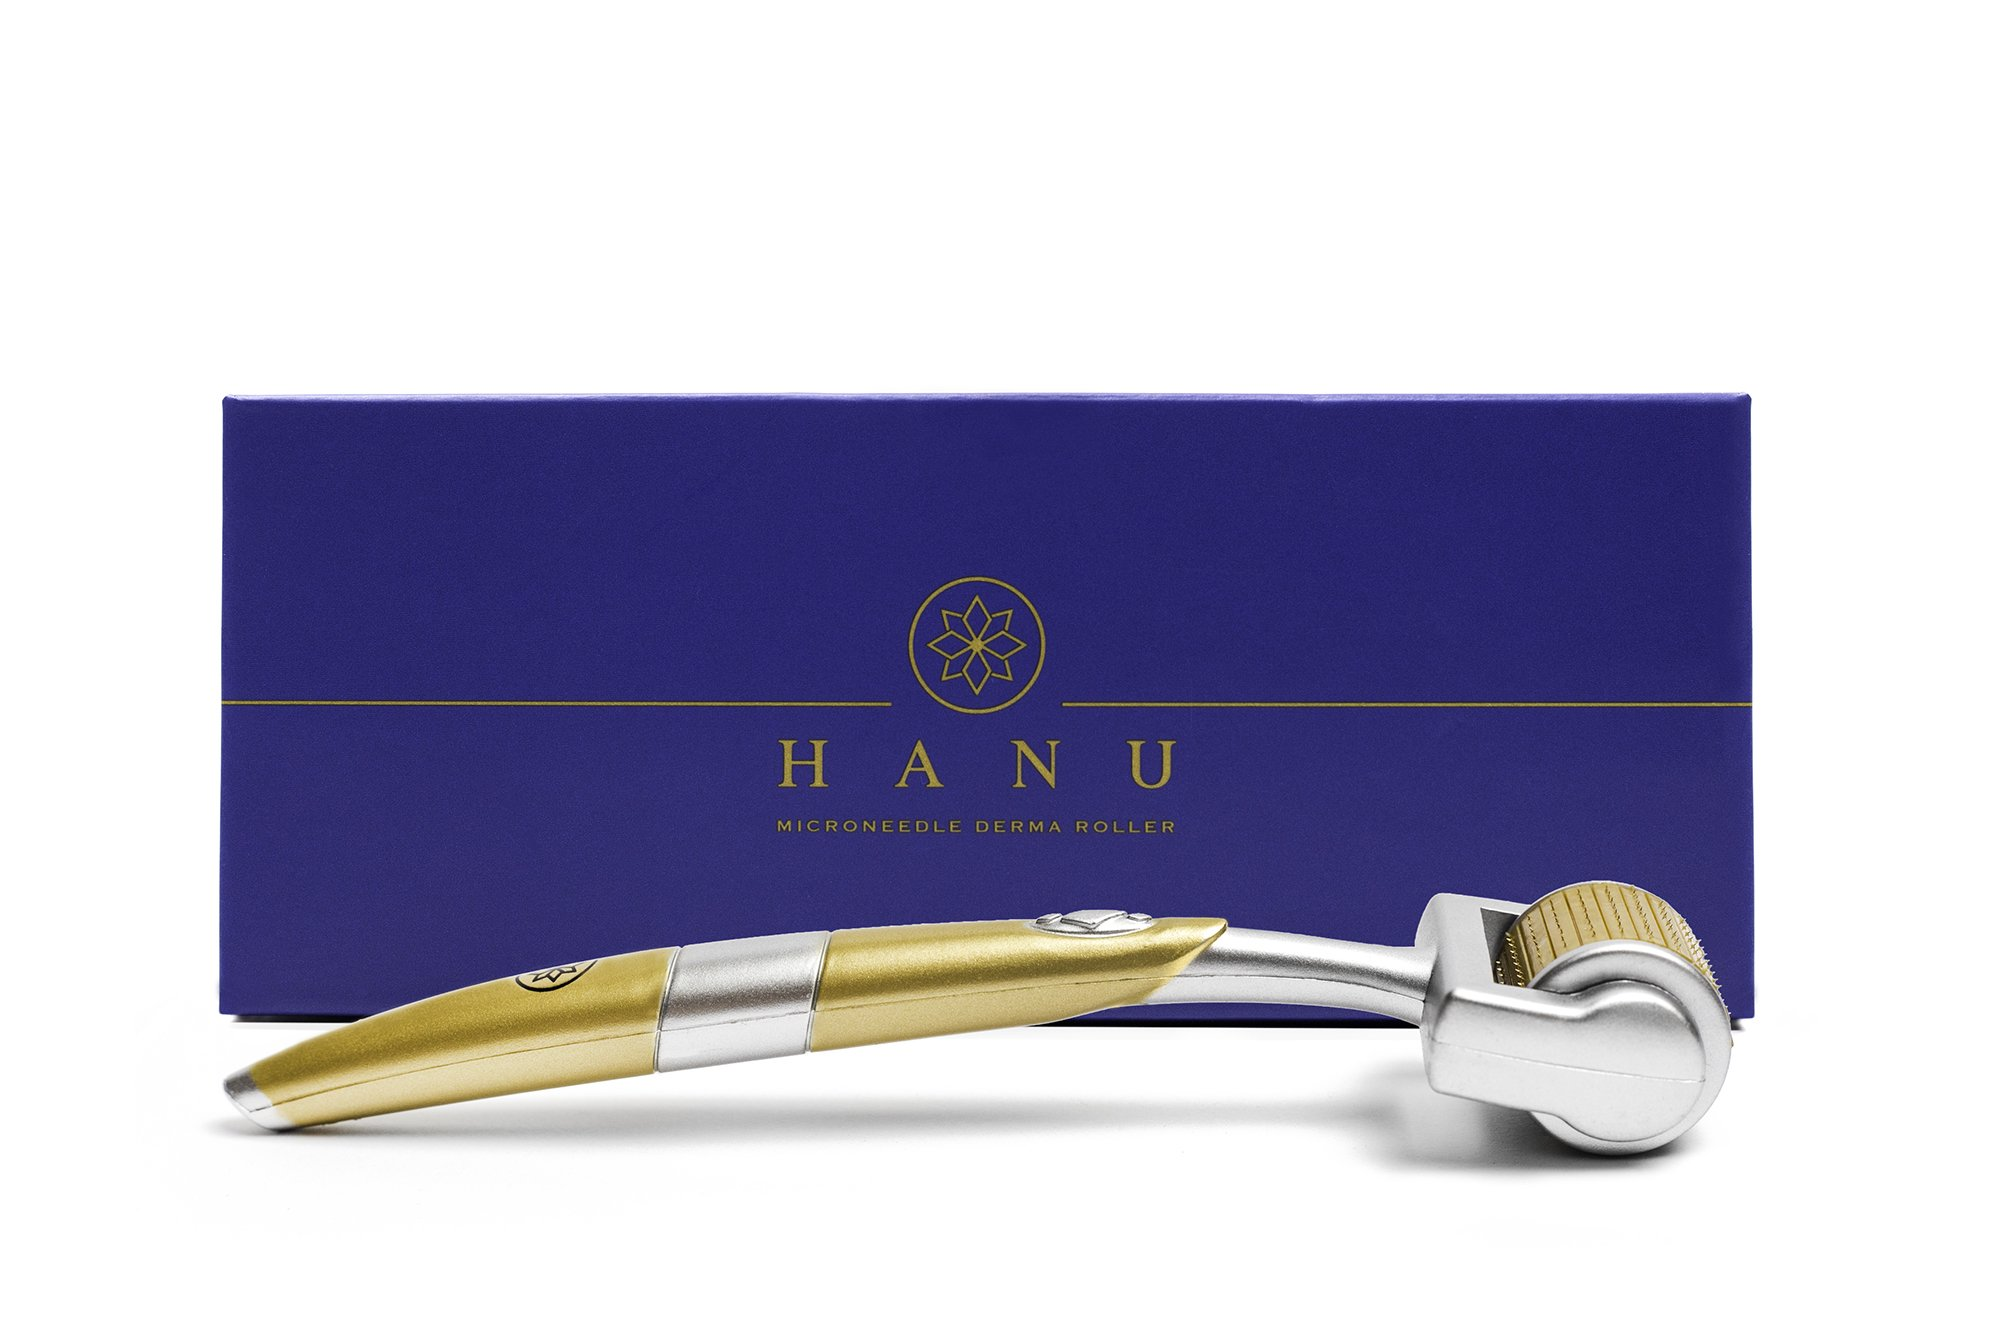 Premium Micro Needle Derma Roller – Professional Style Cosmetic Needling Kit for Facial Nose Body Skin Care | 0.25mm 192 Titanium Micro Needles | Free Storage Case | ZGTS Skincare Tool by HANU Beauty